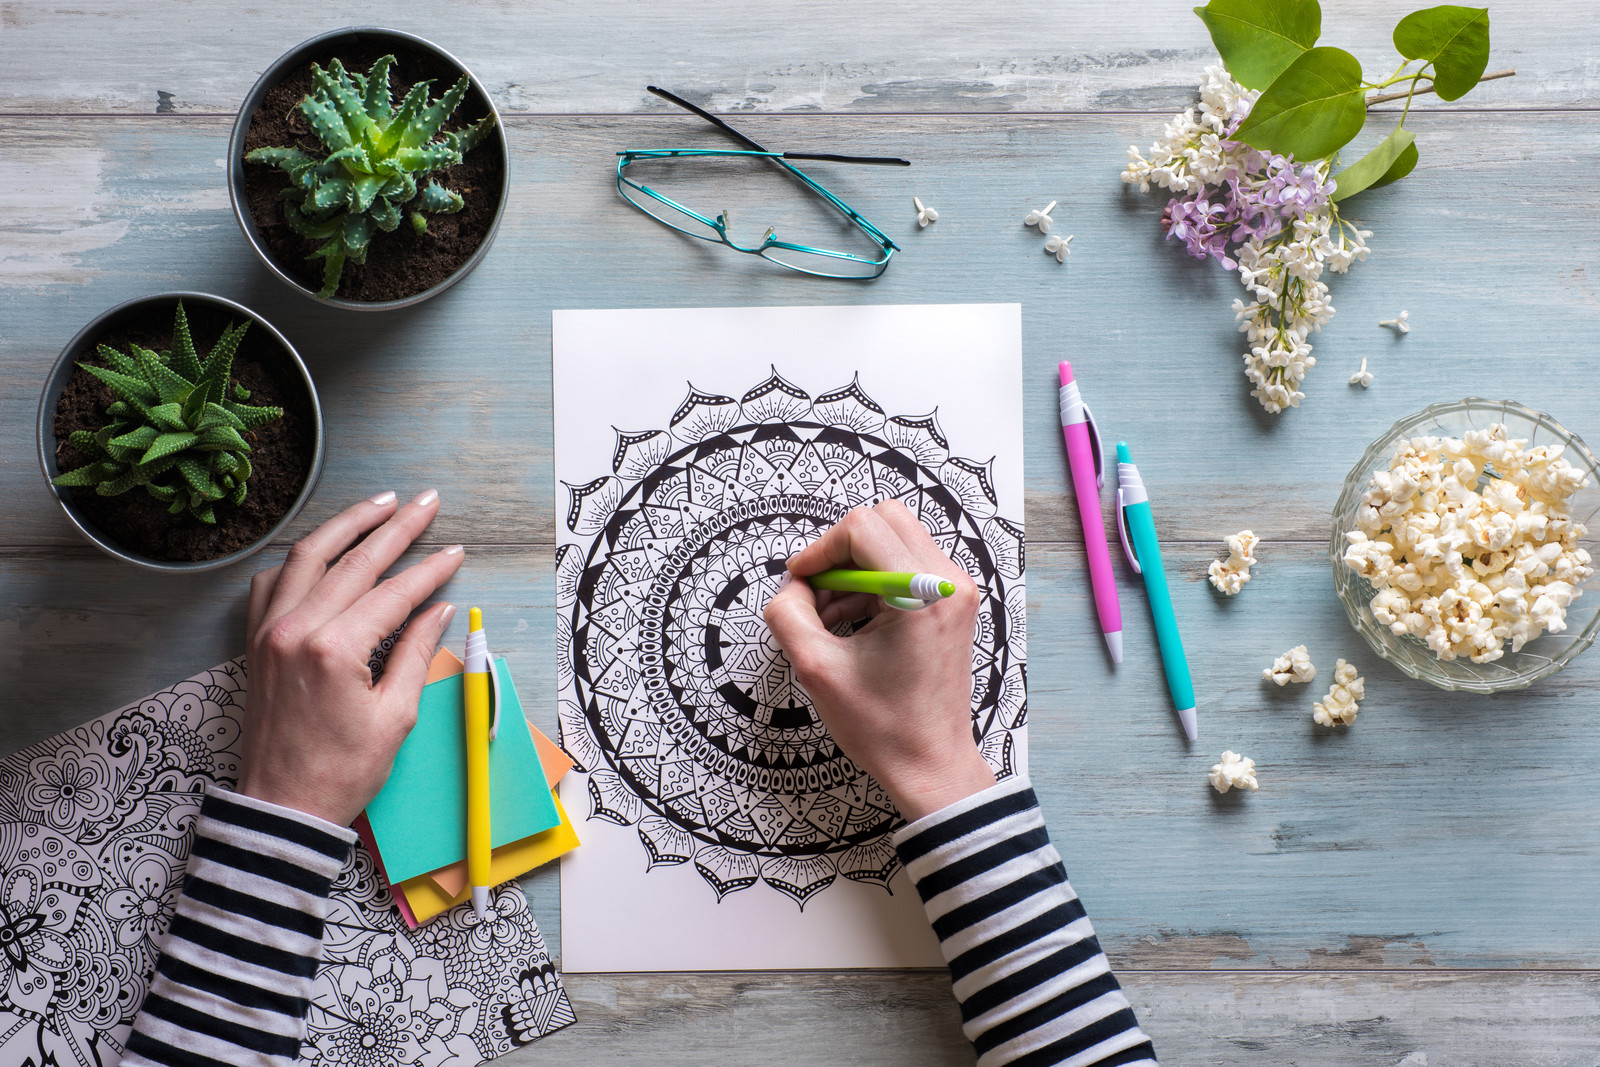 Photo of a woman's hands coloring a mandala with two succulents and colored pencils, popcorn and reading glasses sitting on the table too